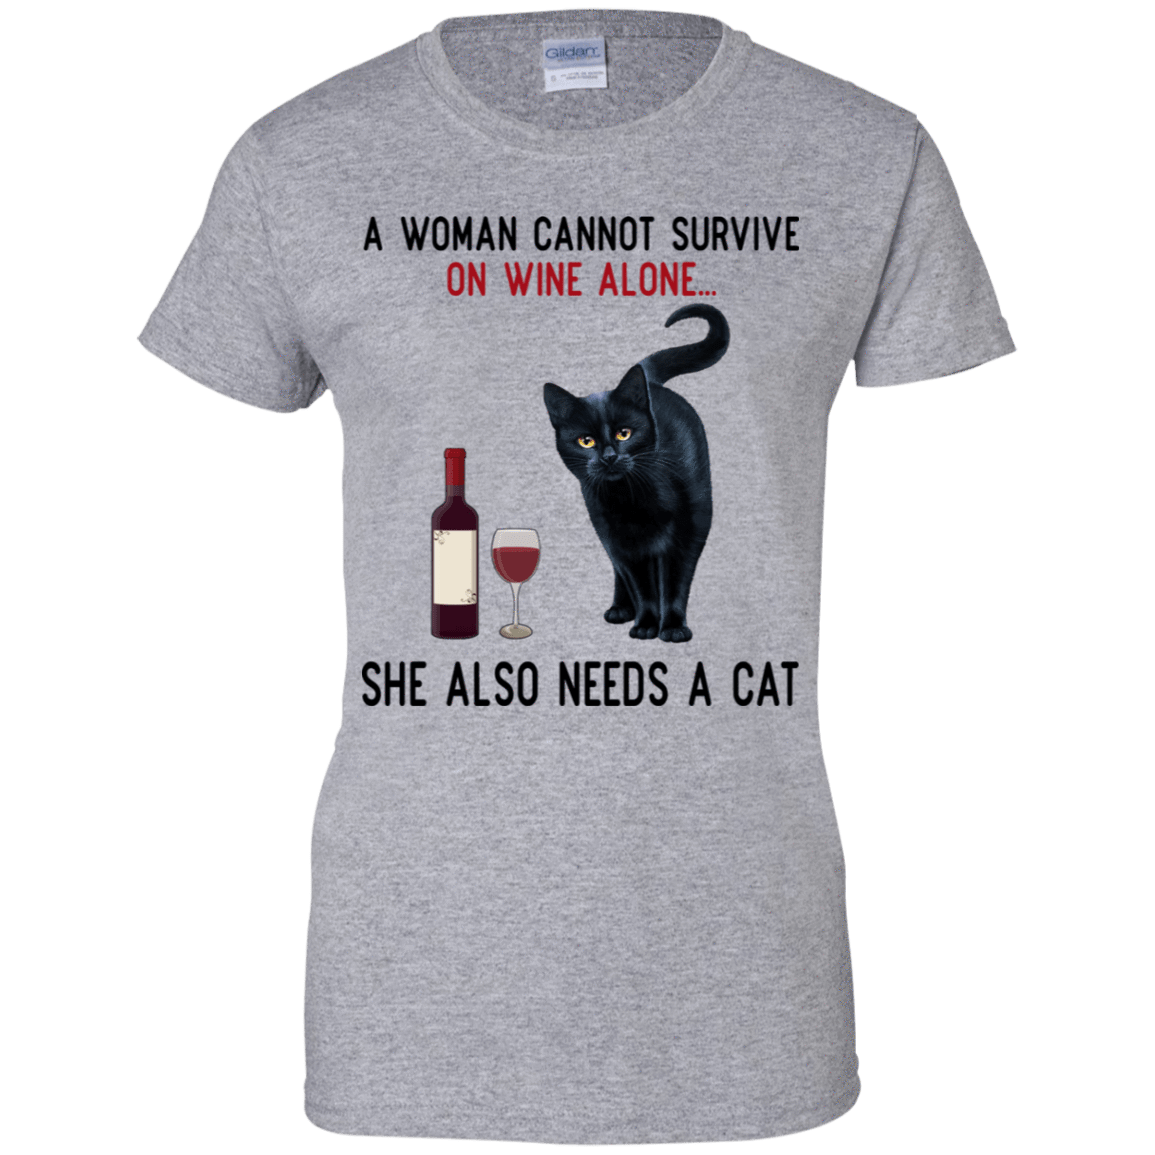 A Woman Cannot Survive On Wine Alone She Also Need A Cat T-Shirts, Hoodies 939-9265-77528899-44821 - Tee Ript